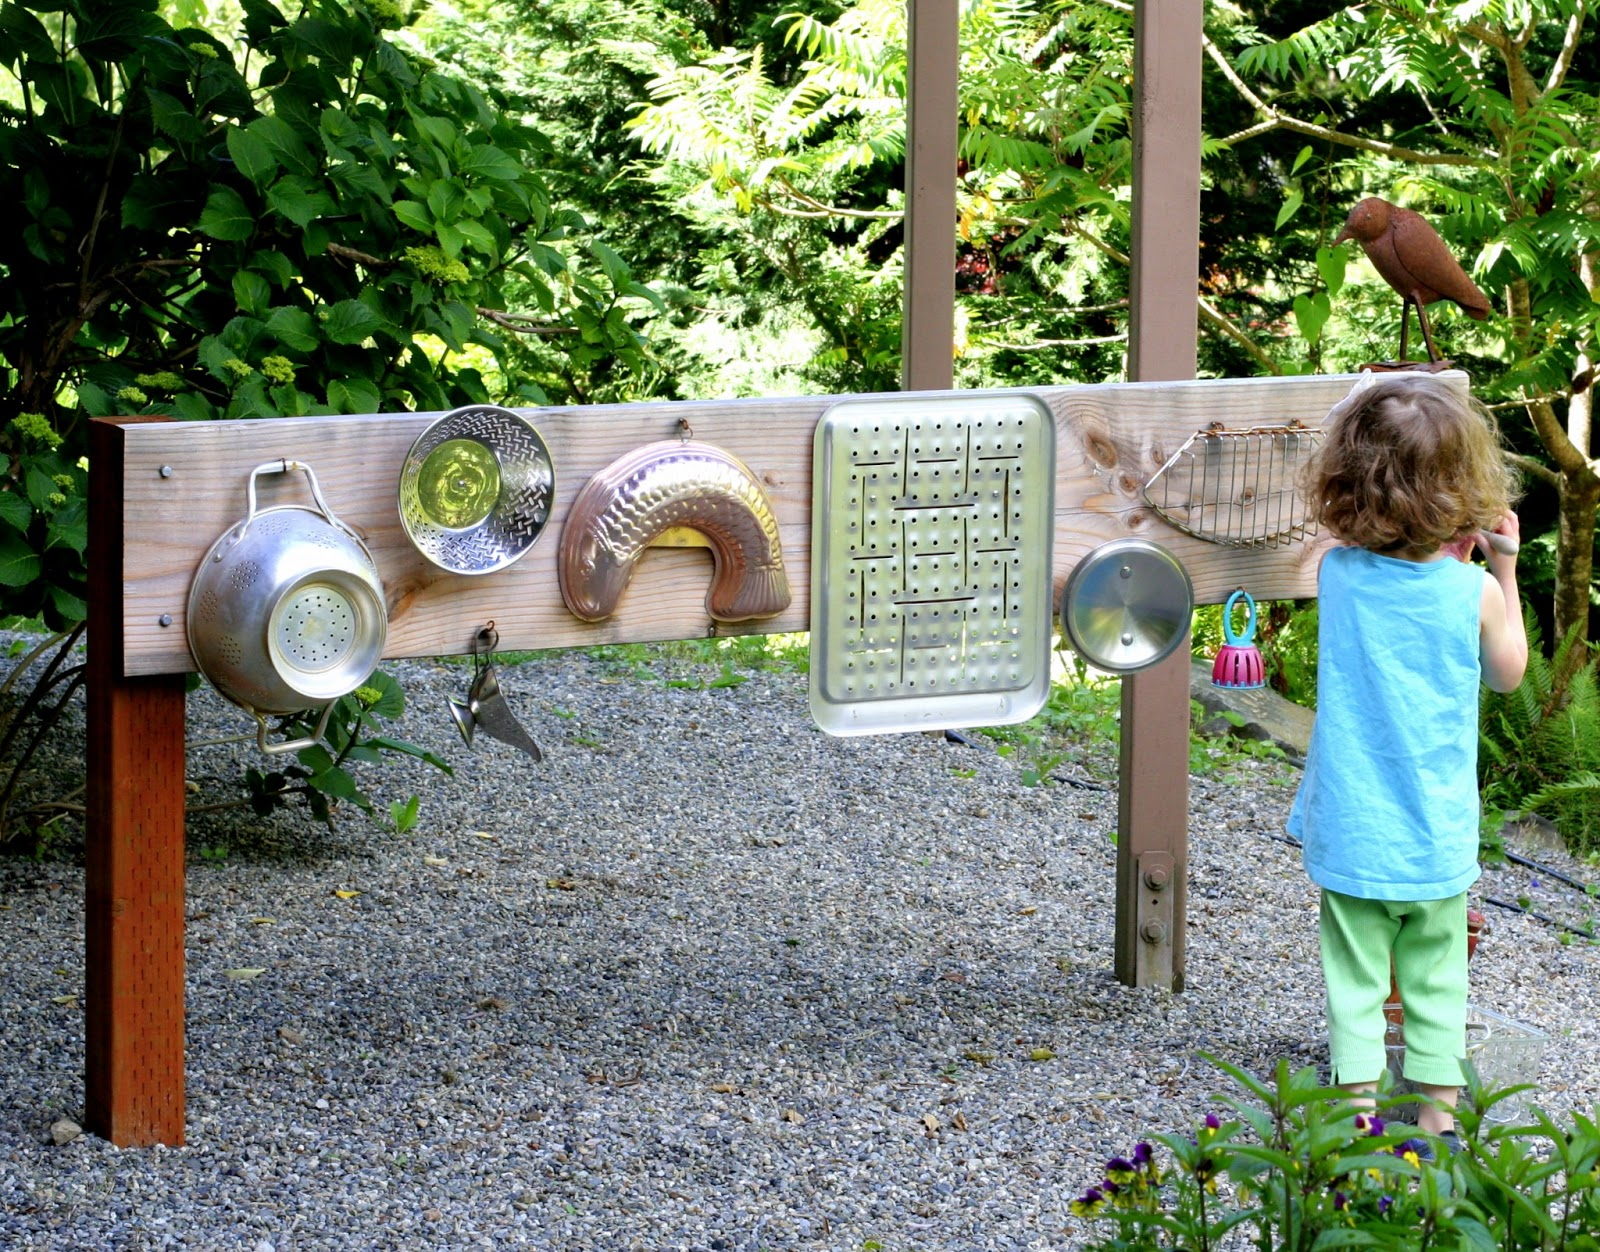 Garden Design Game Creative Creative Garden Ideas For Kids  Interior Design